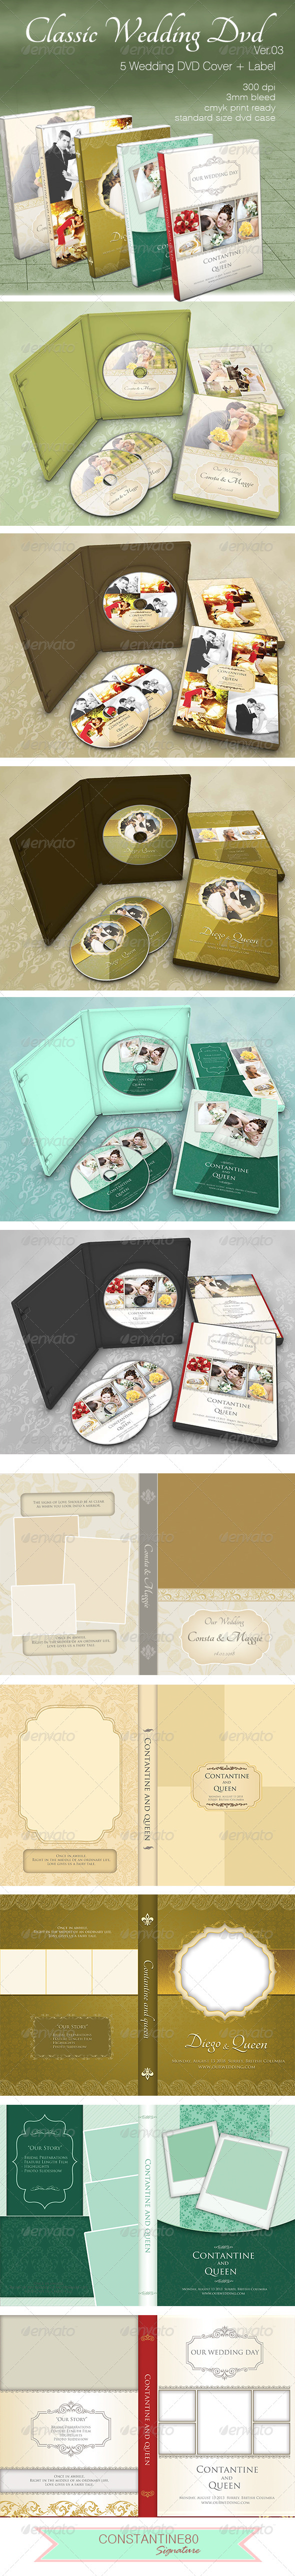 Classic Wedding Dvd ver03 - CD & DVD Artwork Print Templates